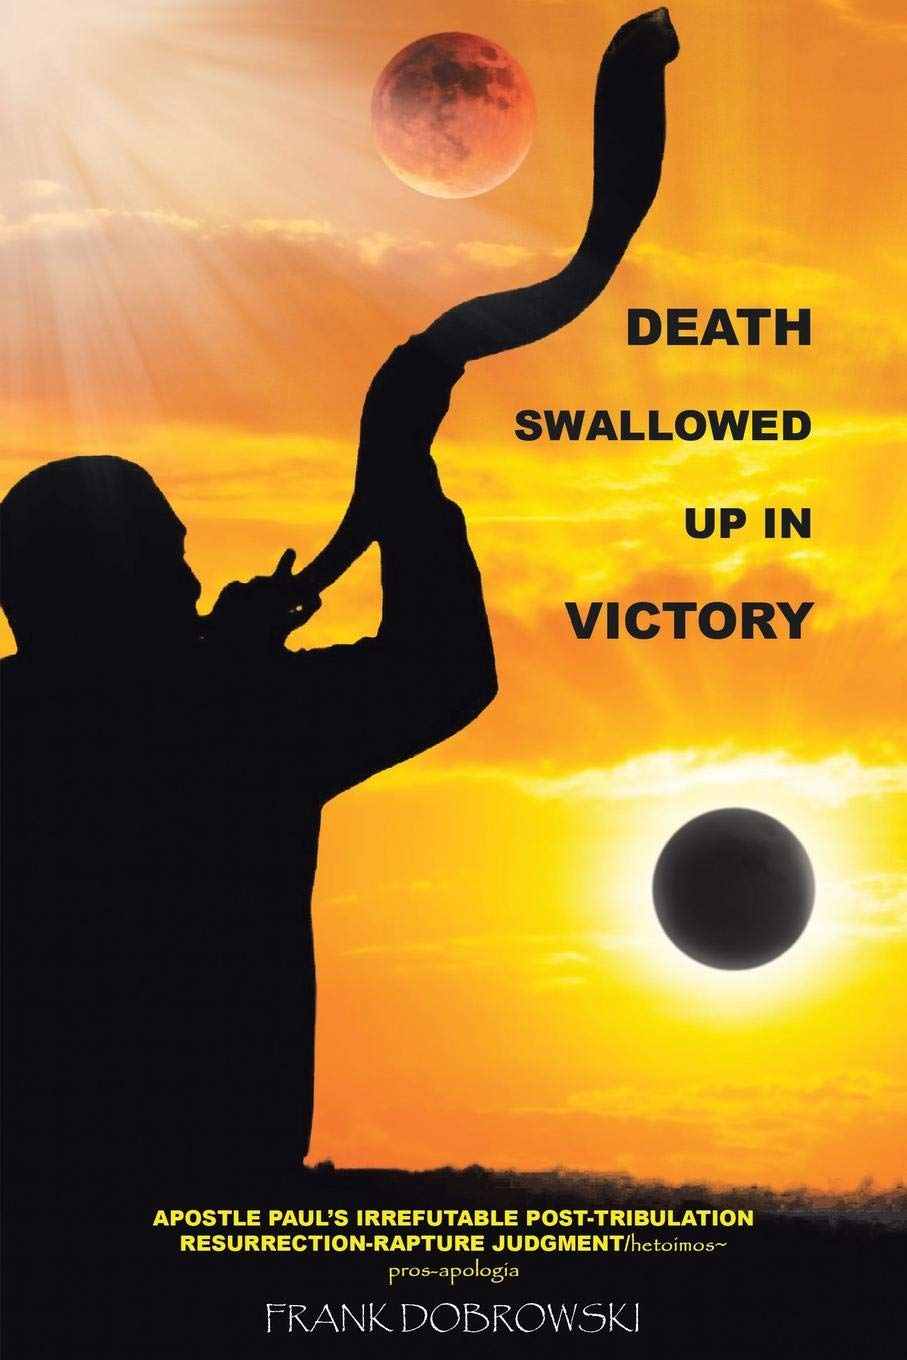 DEATH Swallowed Up In Victory: Apostle Paul's Irrefutable